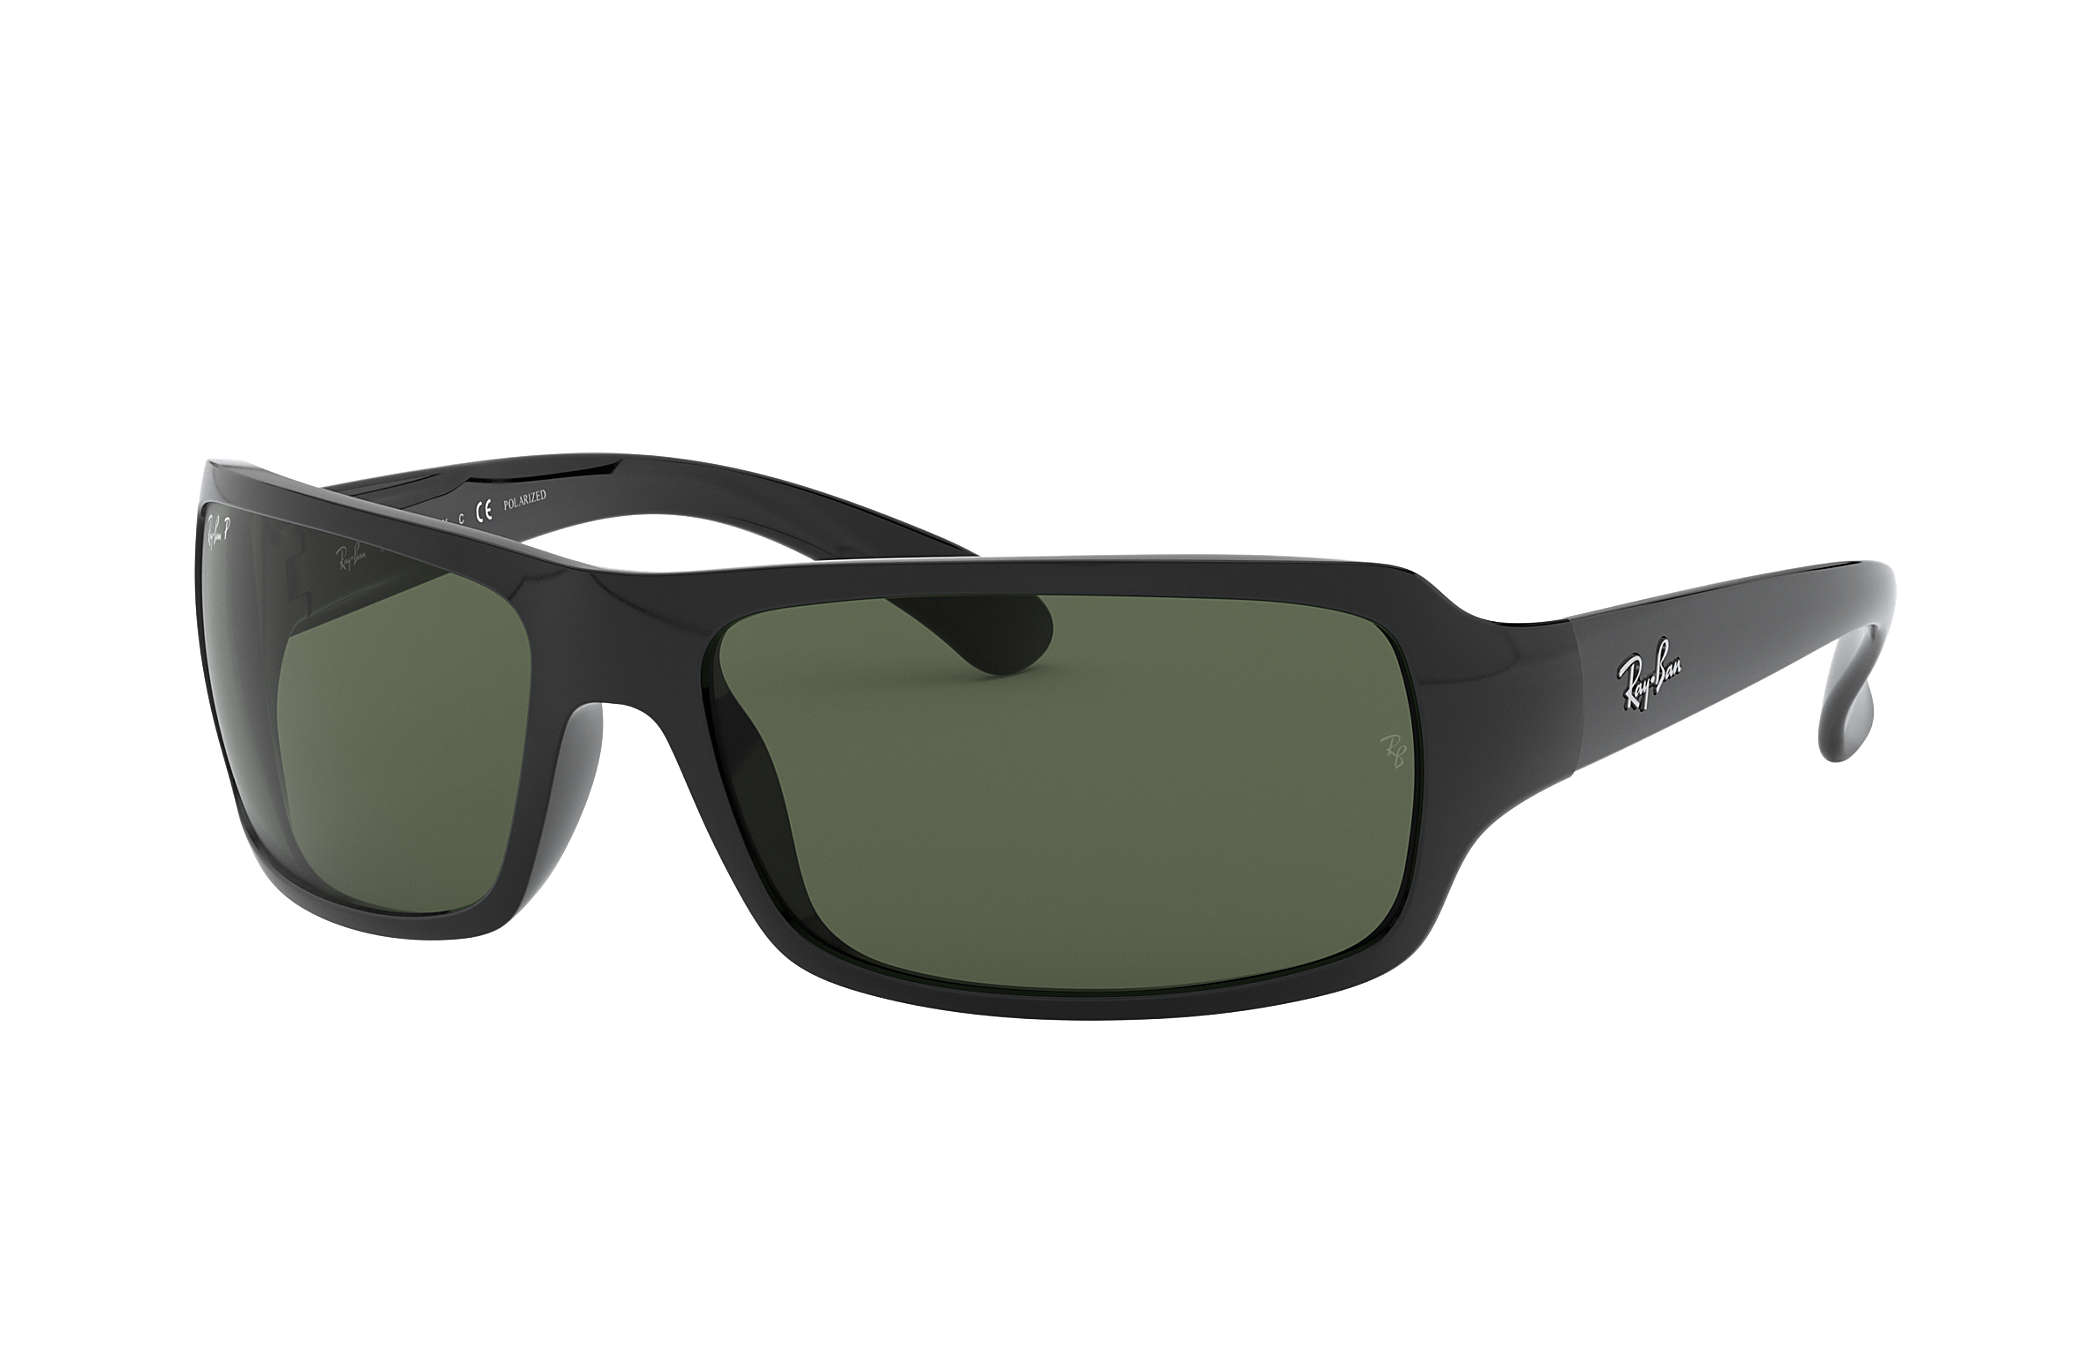 Ray Ban Solaire Femme Krys   David Simchi-Levi bed4033362f8